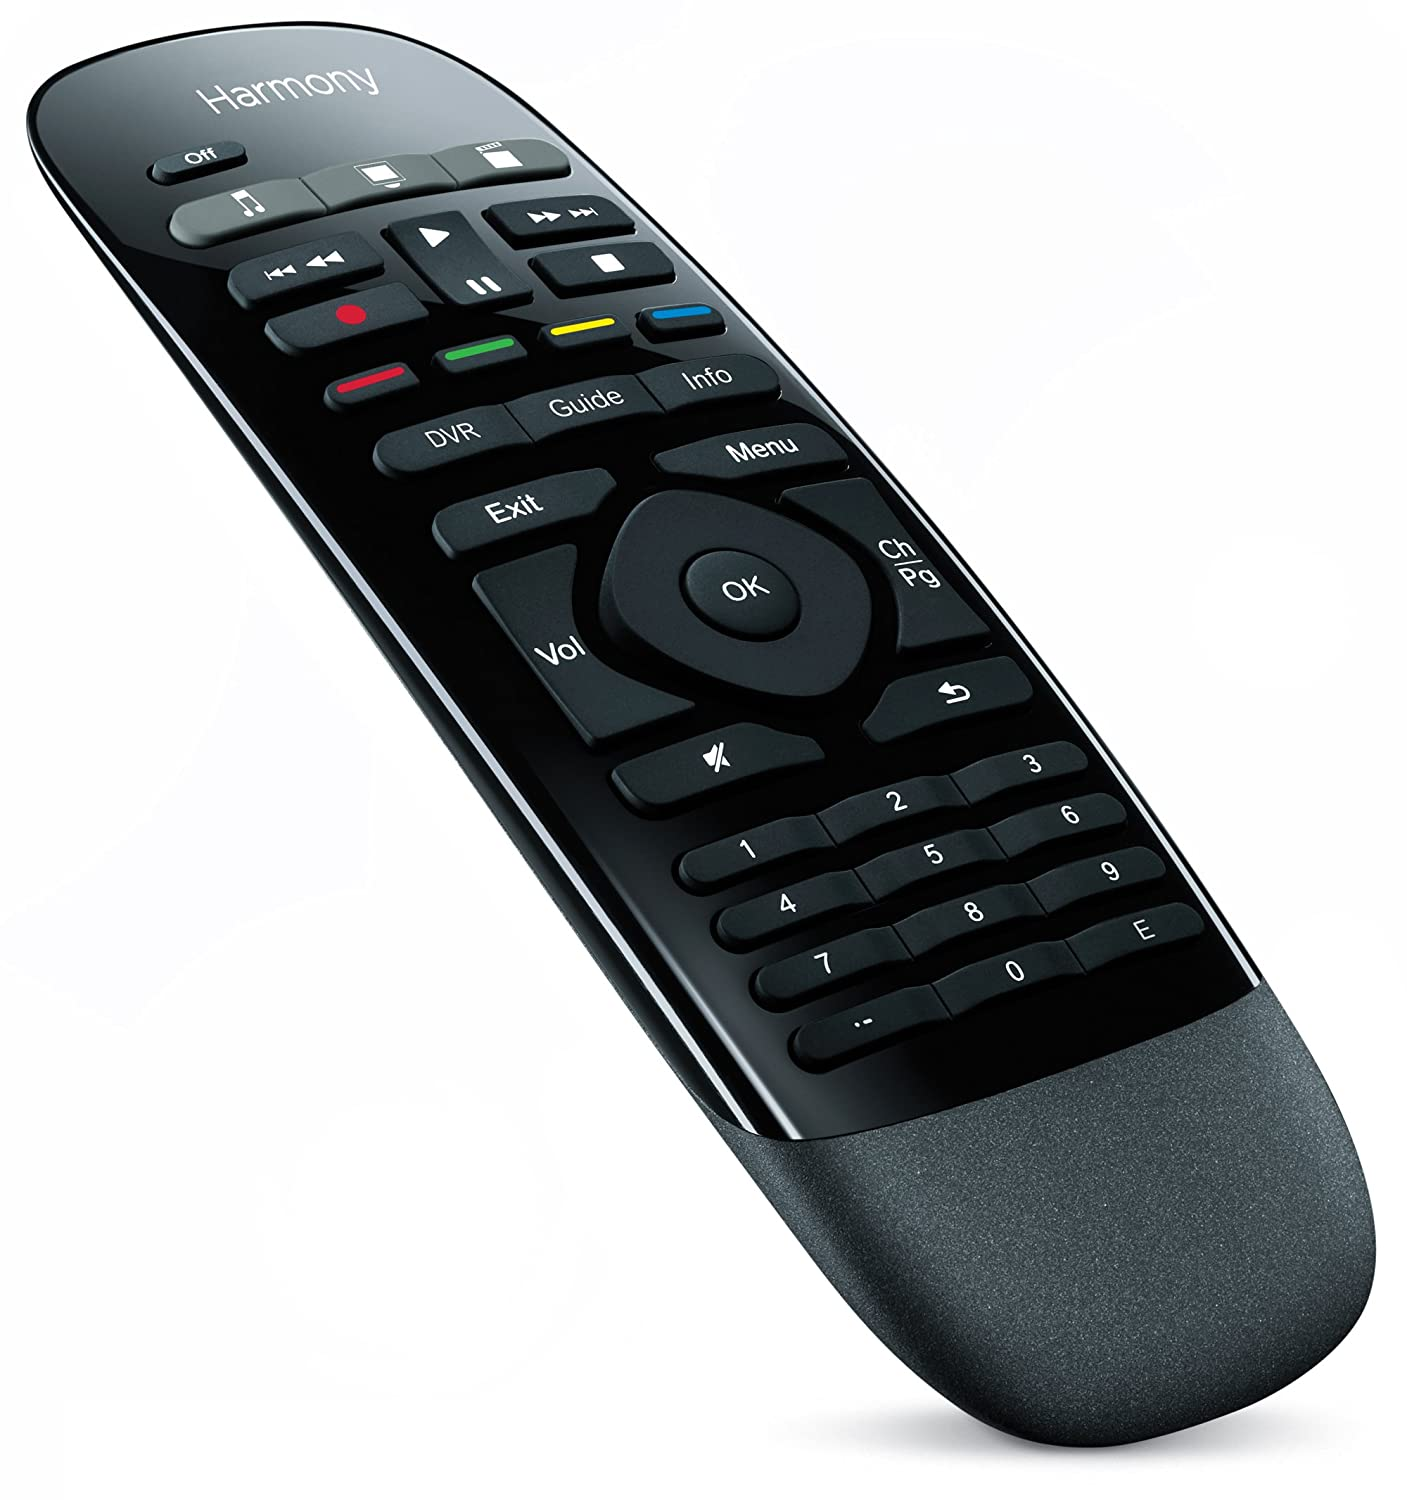 Top best gift for your dad this christmas-Logitech Harmony Smart Control with Smartphone App